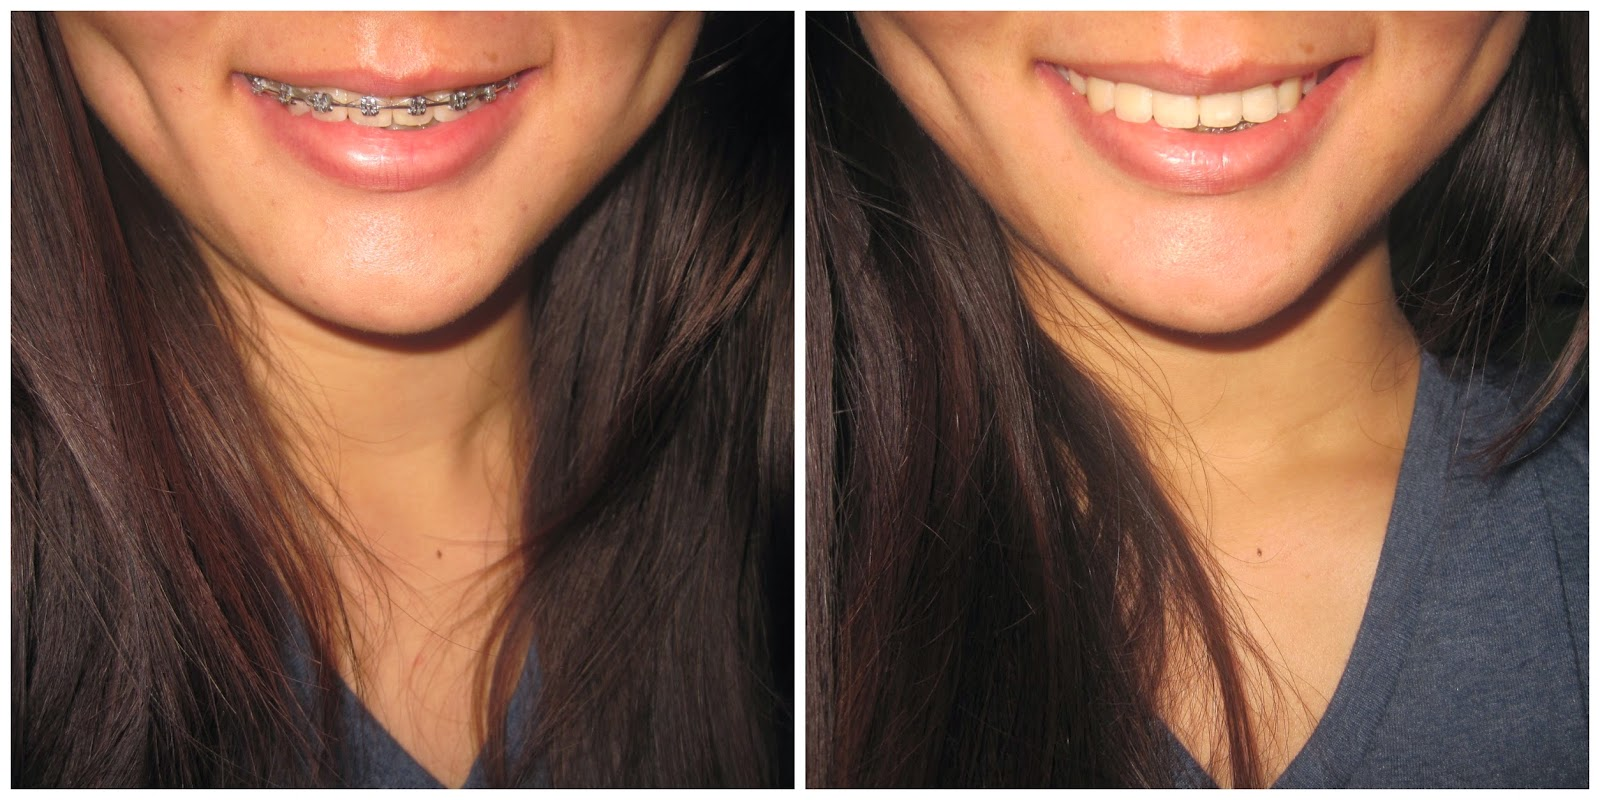 To flawless braces review before and after side by side comparison solutioingenieria Choice Image